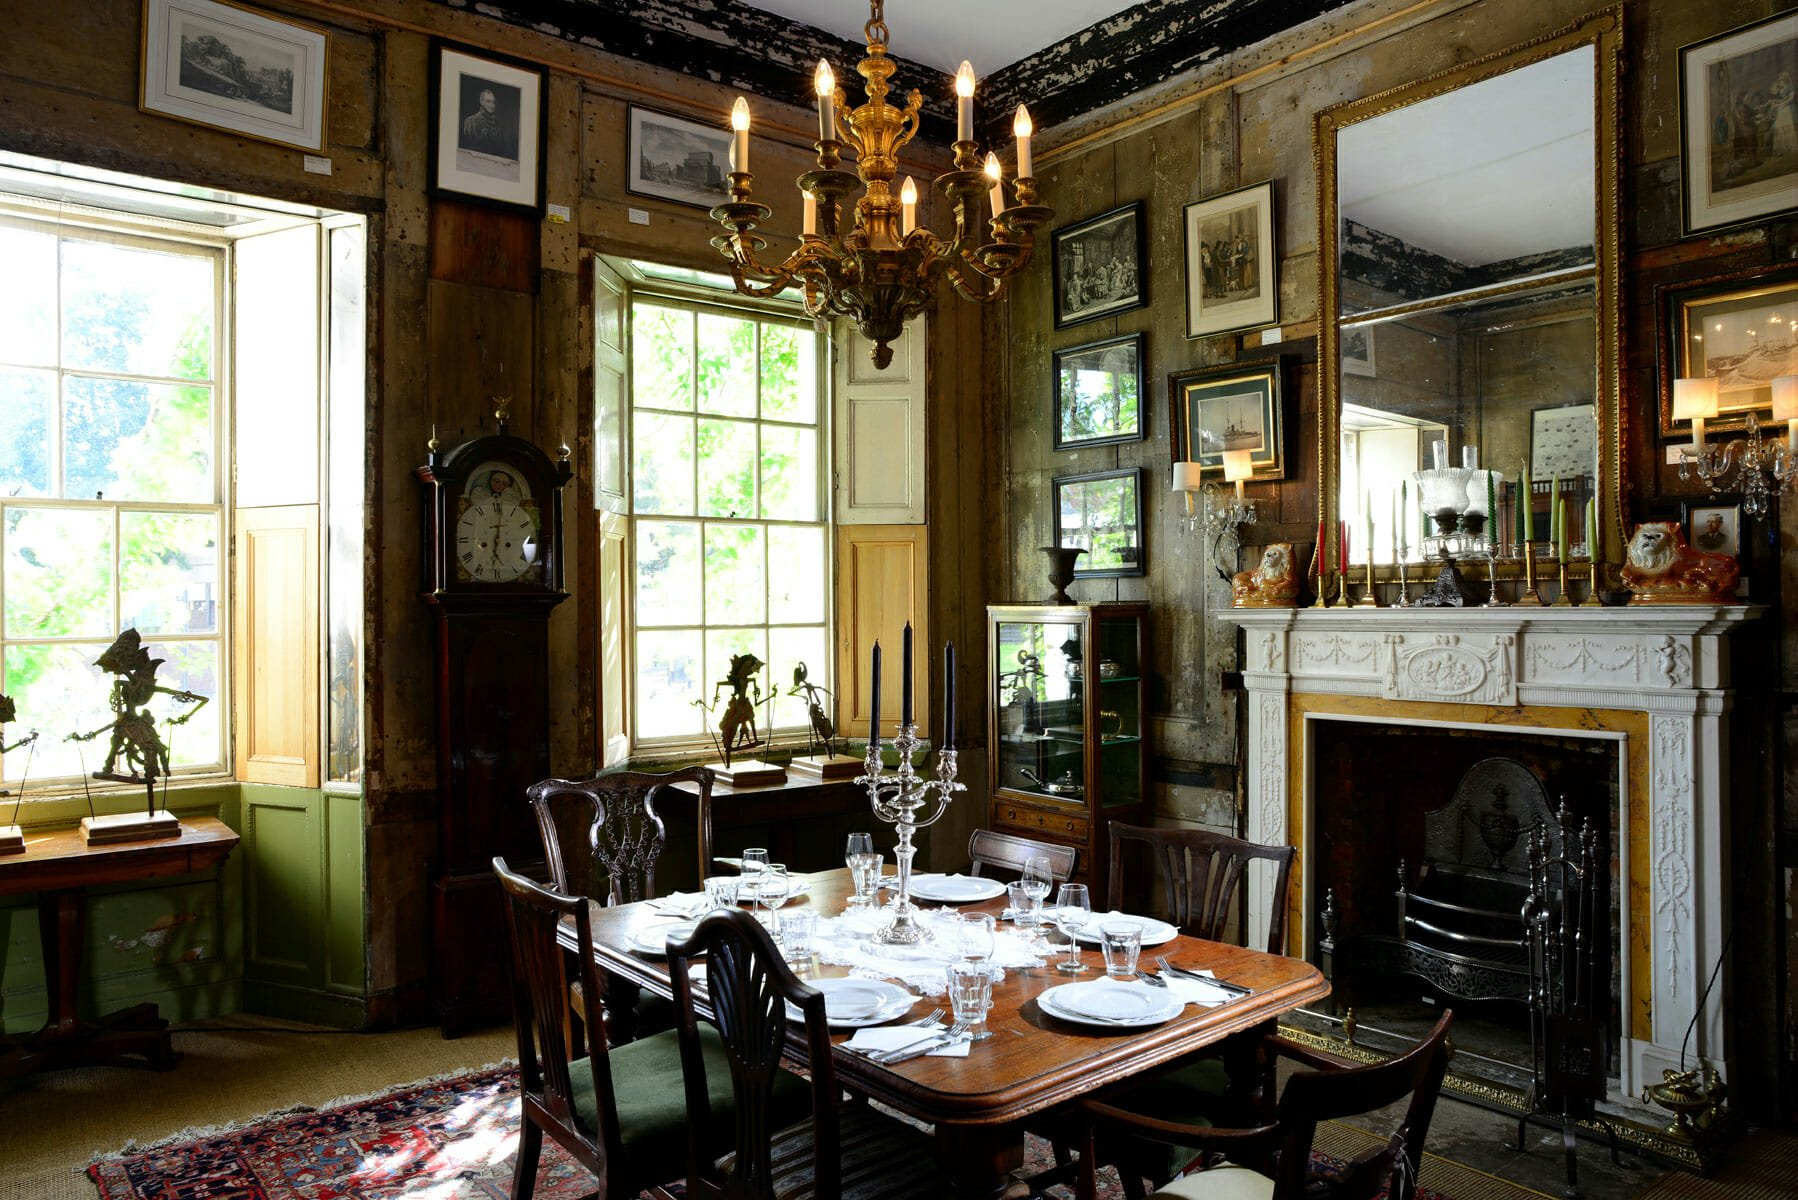 Brunswick house private dining room London